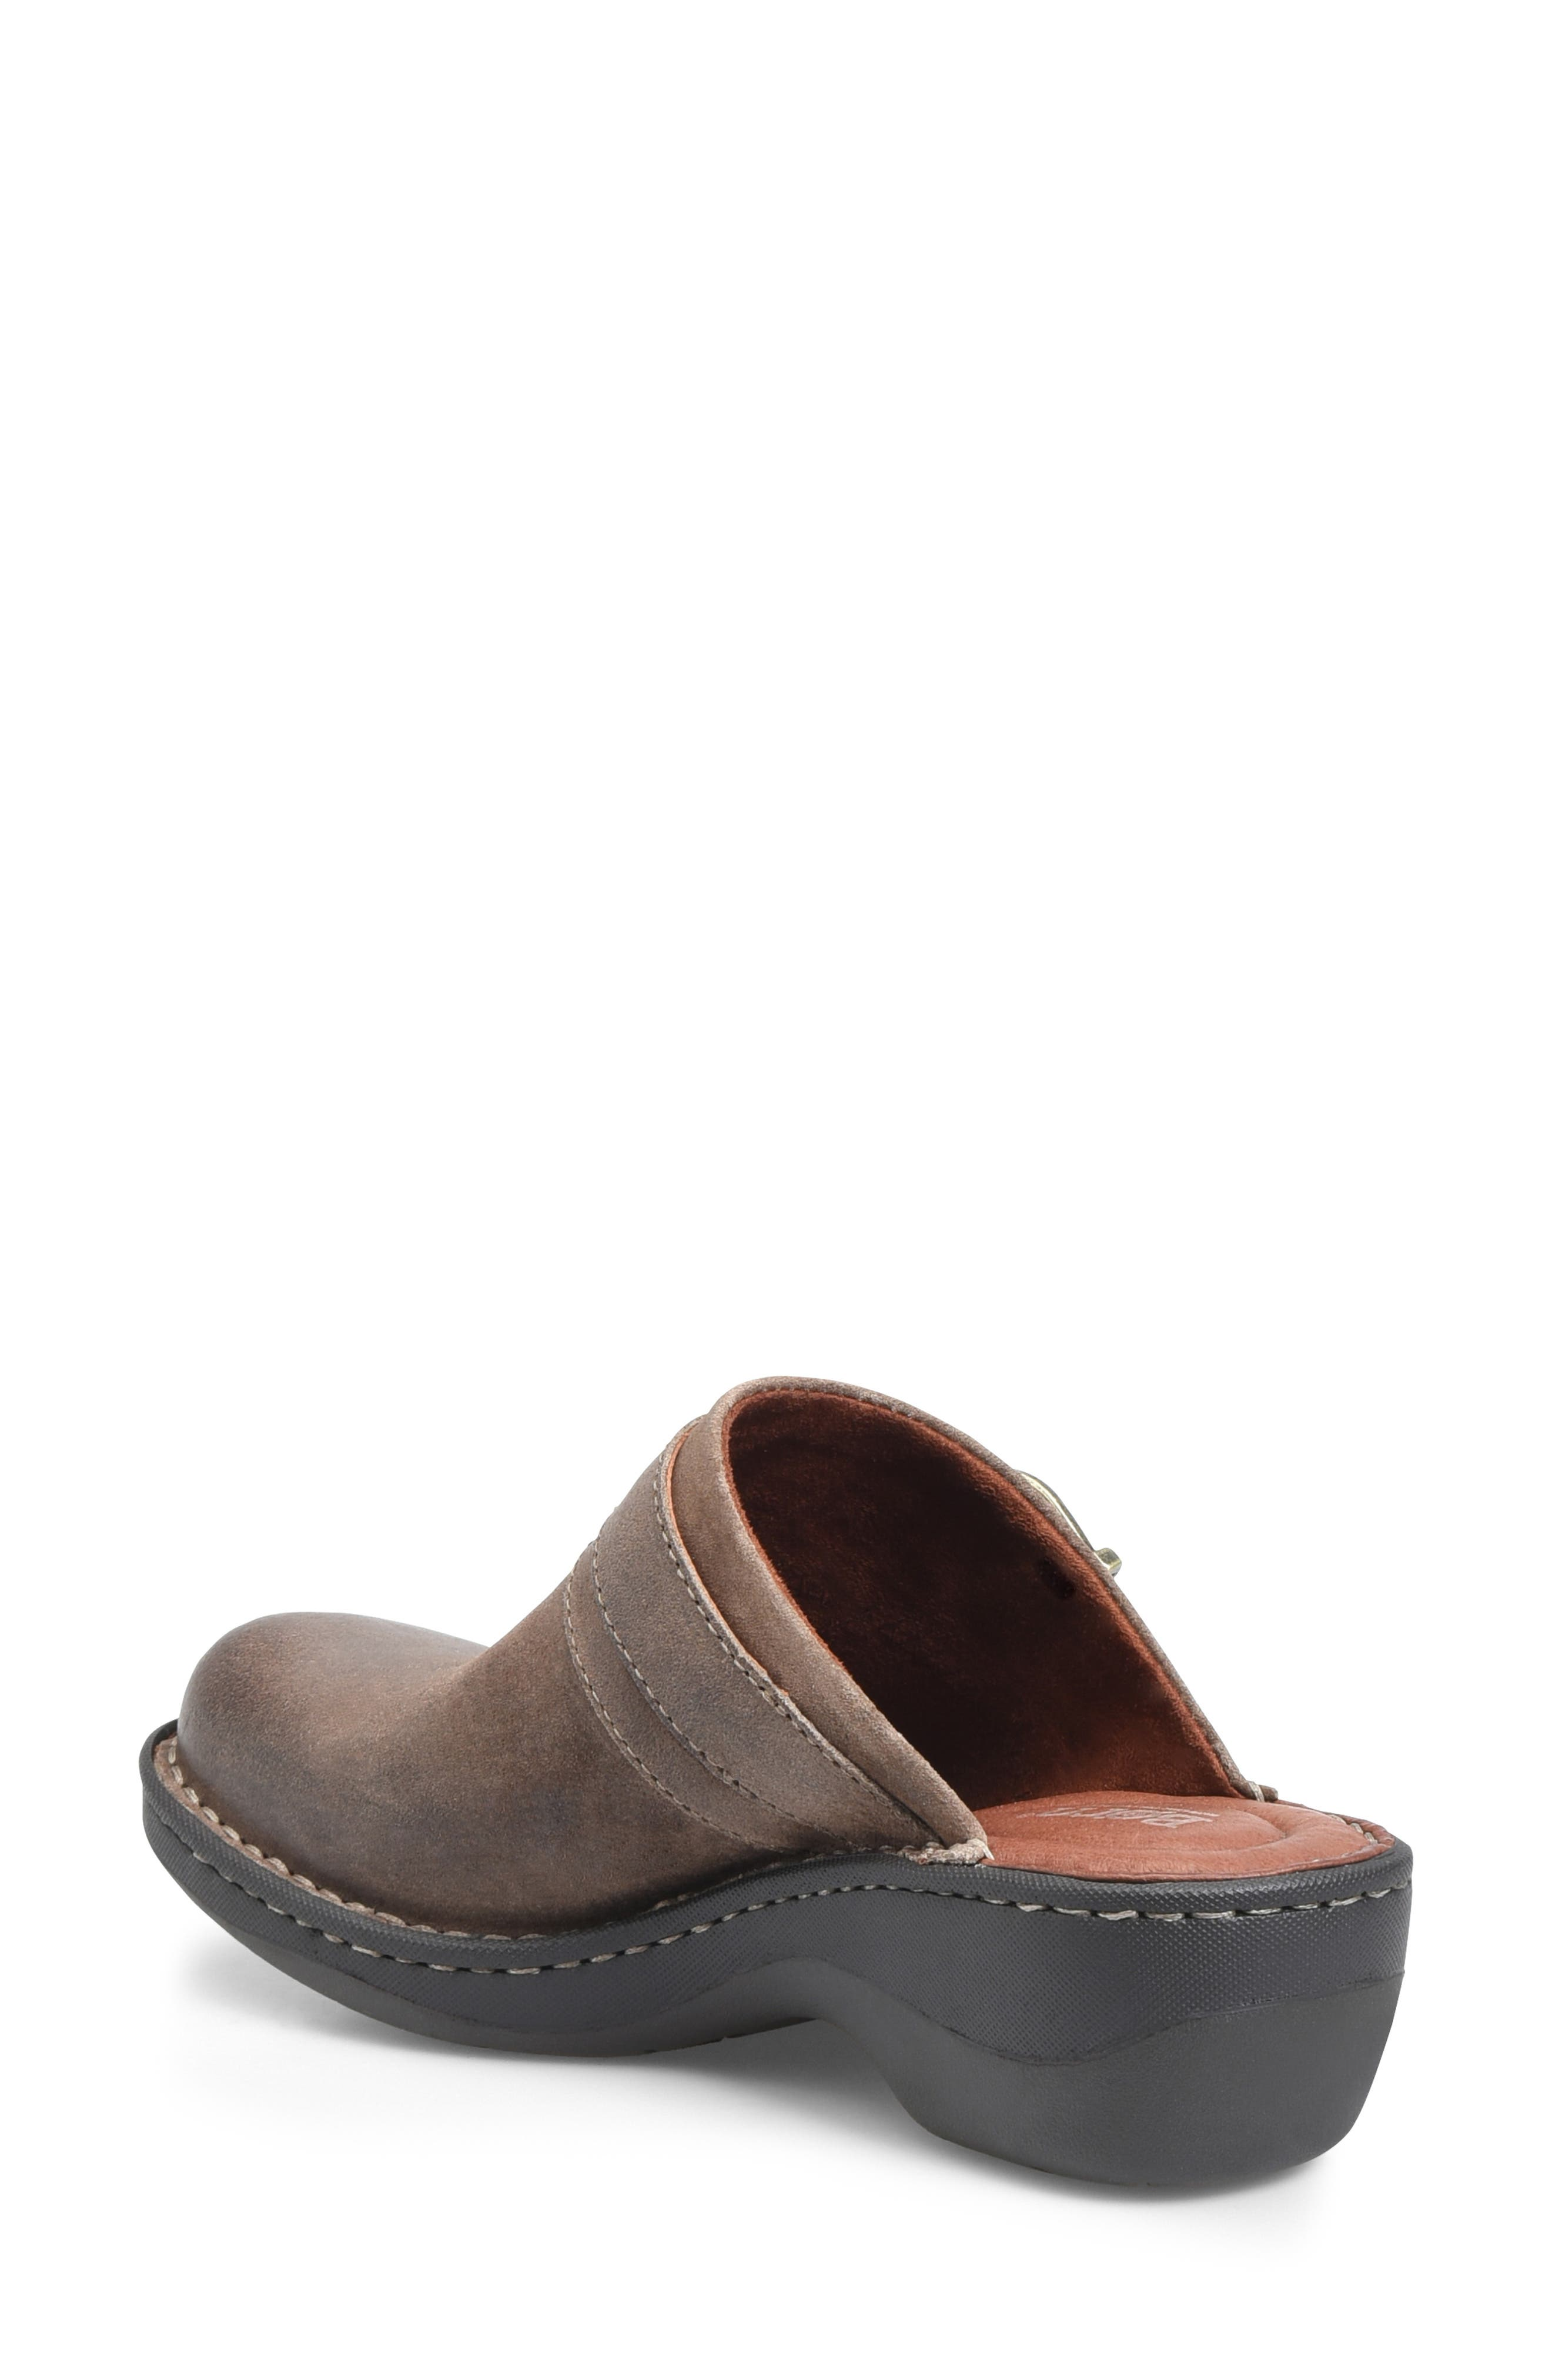 BØRN, Avoca Clog, Alternate thumbnail 2, color, TAUPE DISTRESSED LEATHER